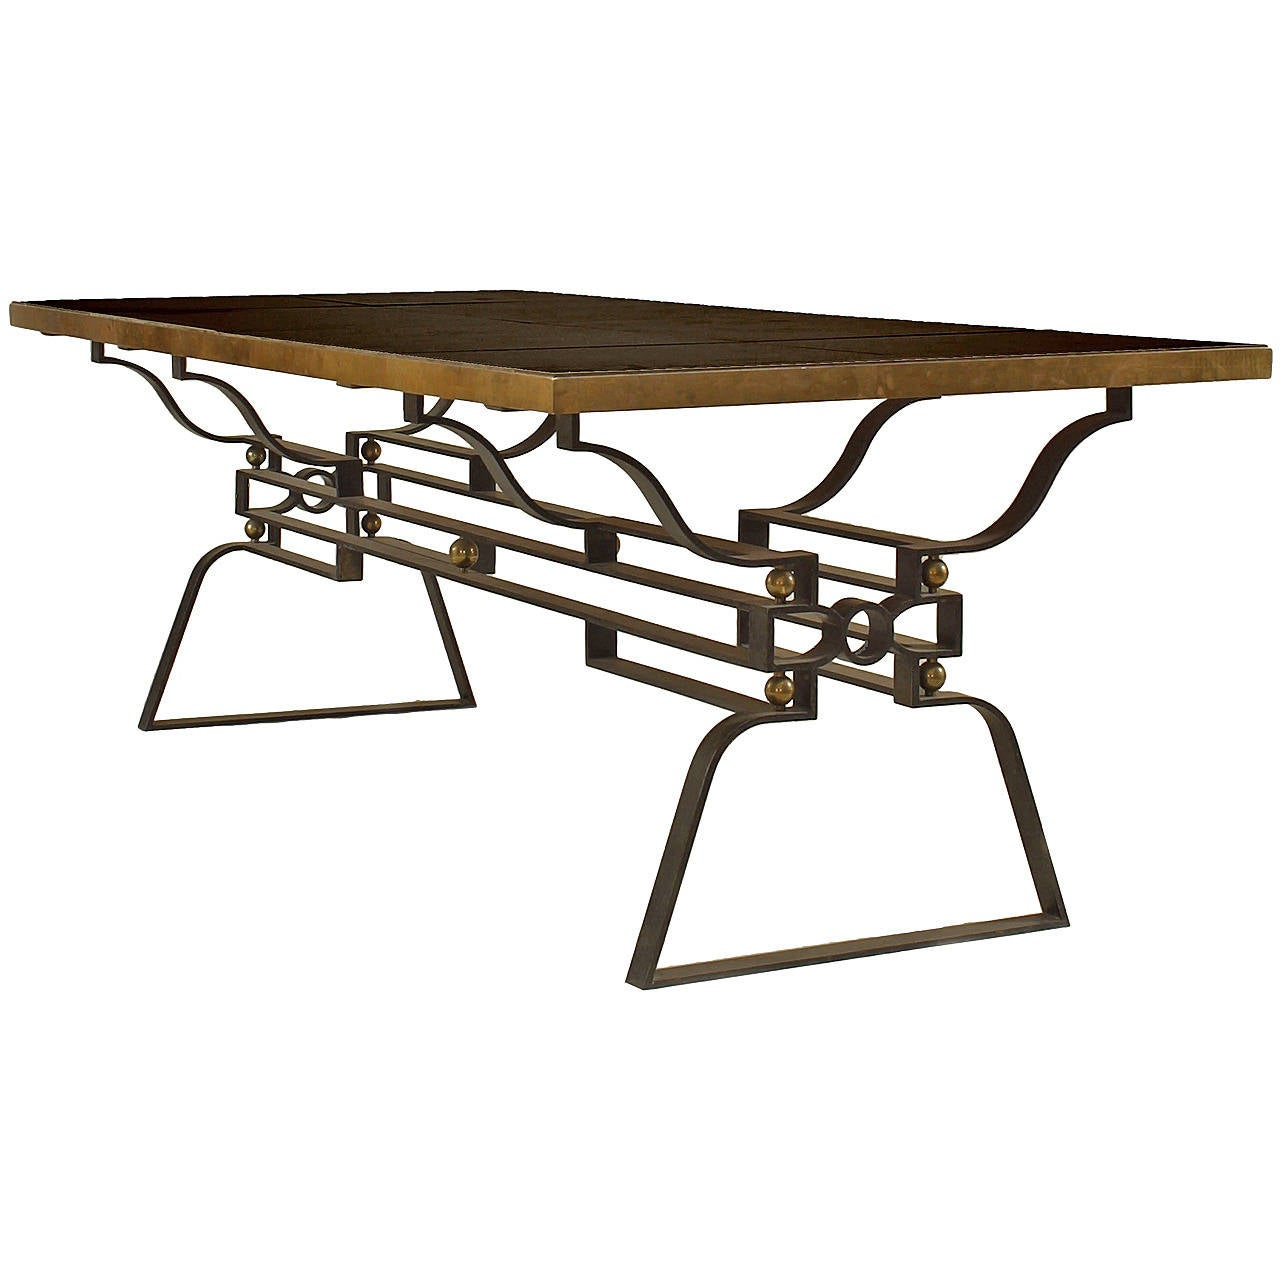 Sensational French Marble, Bronze and Iron Dining Table, Att: to Poillerat